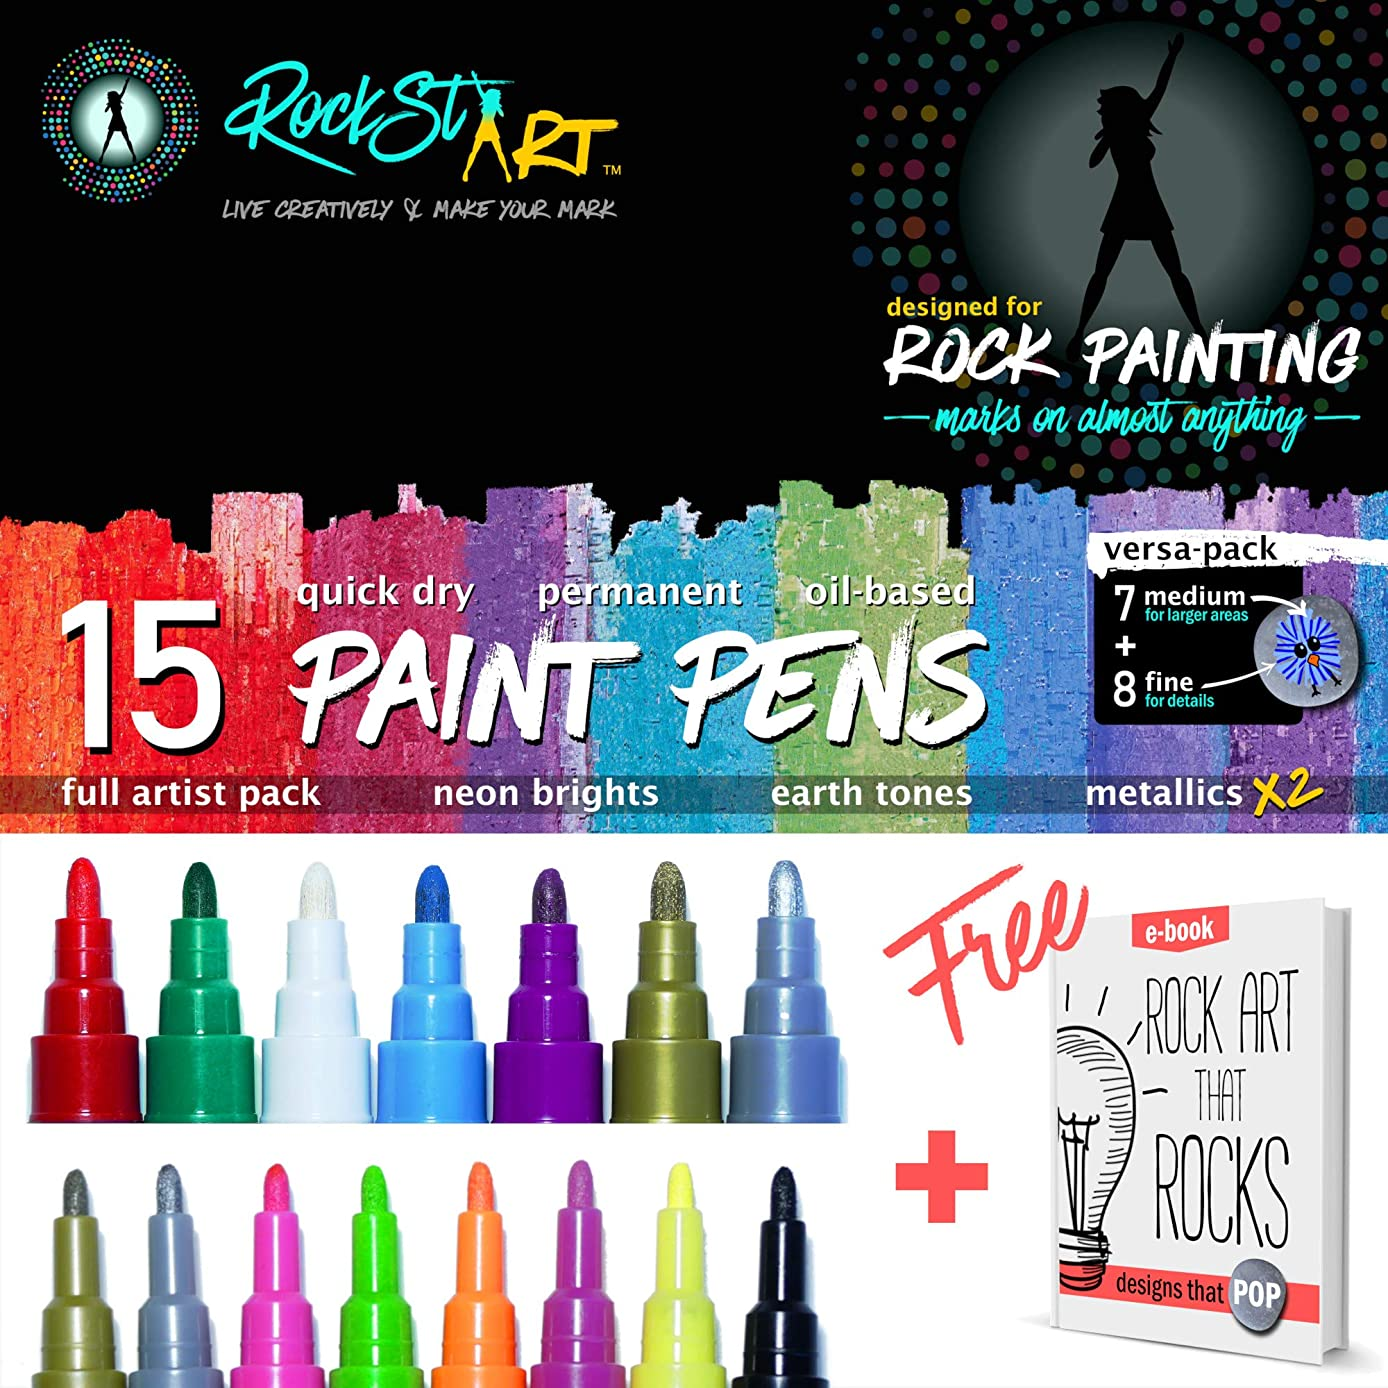 Paint Pens by RockstART   15 Pack Rock Painting Kit of Artist Quality UV Oil-Based Paint Markers + Fine Tip & Medium Pens for Car Tires, Wood, Metal, Mugs, Glass, or Anything + Live Life Creatively